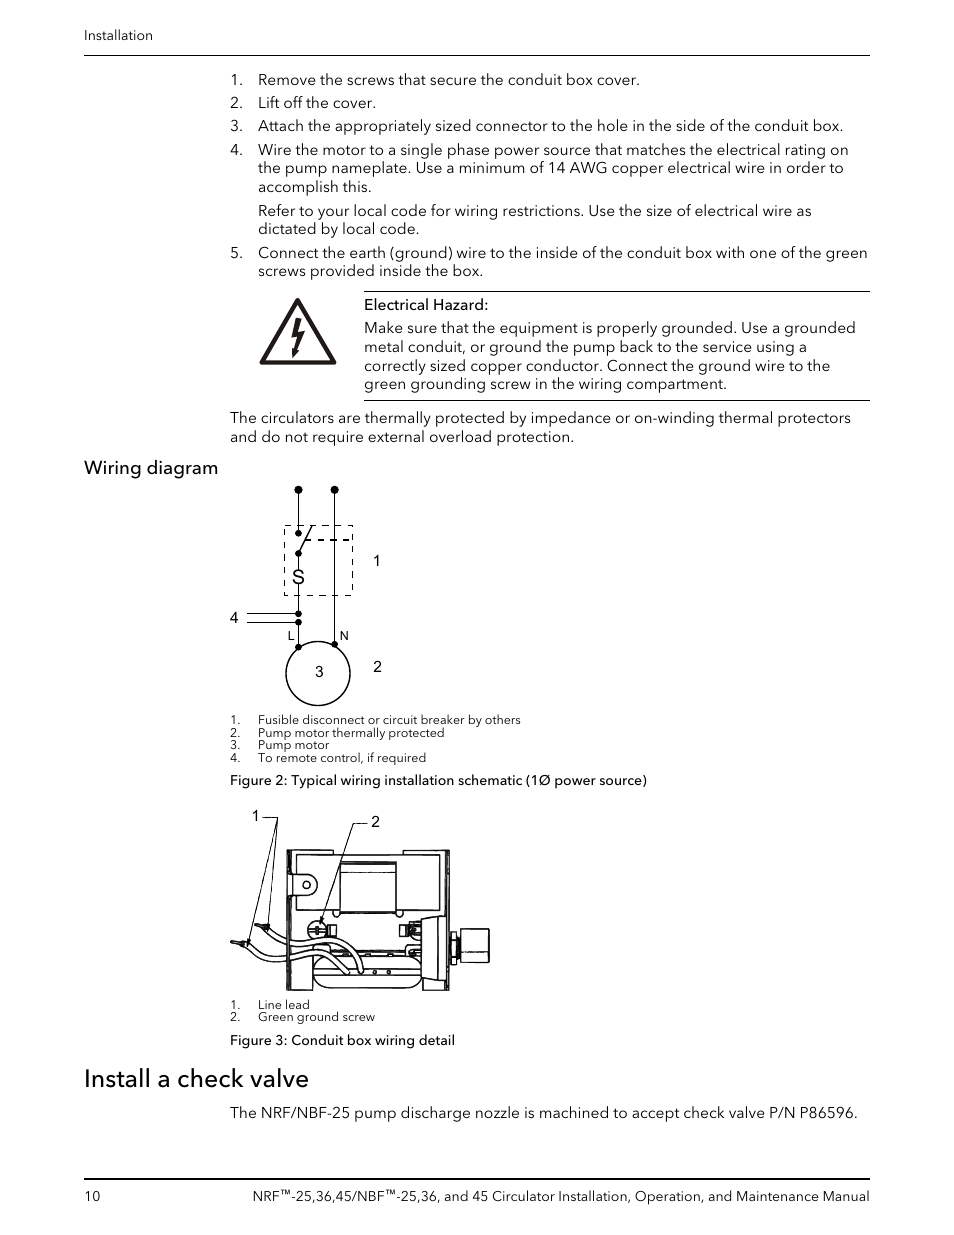 Bell Gossett Wiring Diagram Library Fasco Doorbell Install A Check Valve P86203f Nbf 45 Circulator User